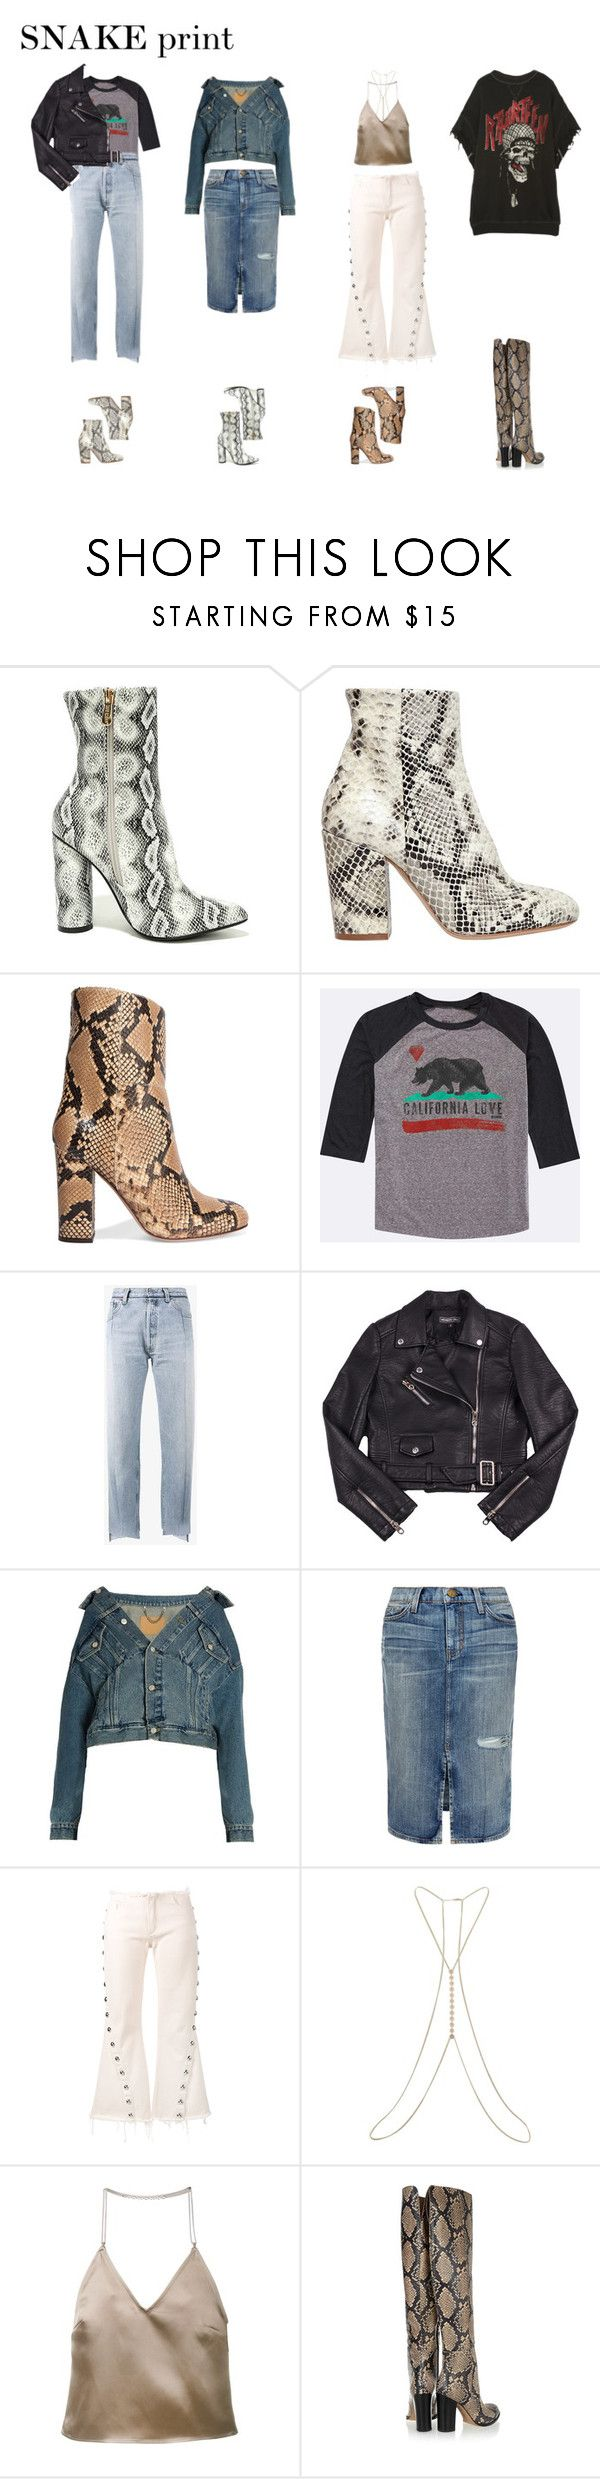 """SNAKE print booties"" by stylish-introvert on Polyvore featuring Cape Robbin, Strategia, Iris & Ink, Billabong, Vetements, Balenciaga, Current/Elliott, Marques'Almeida, Miss Selfridge and Barbara Casasola"